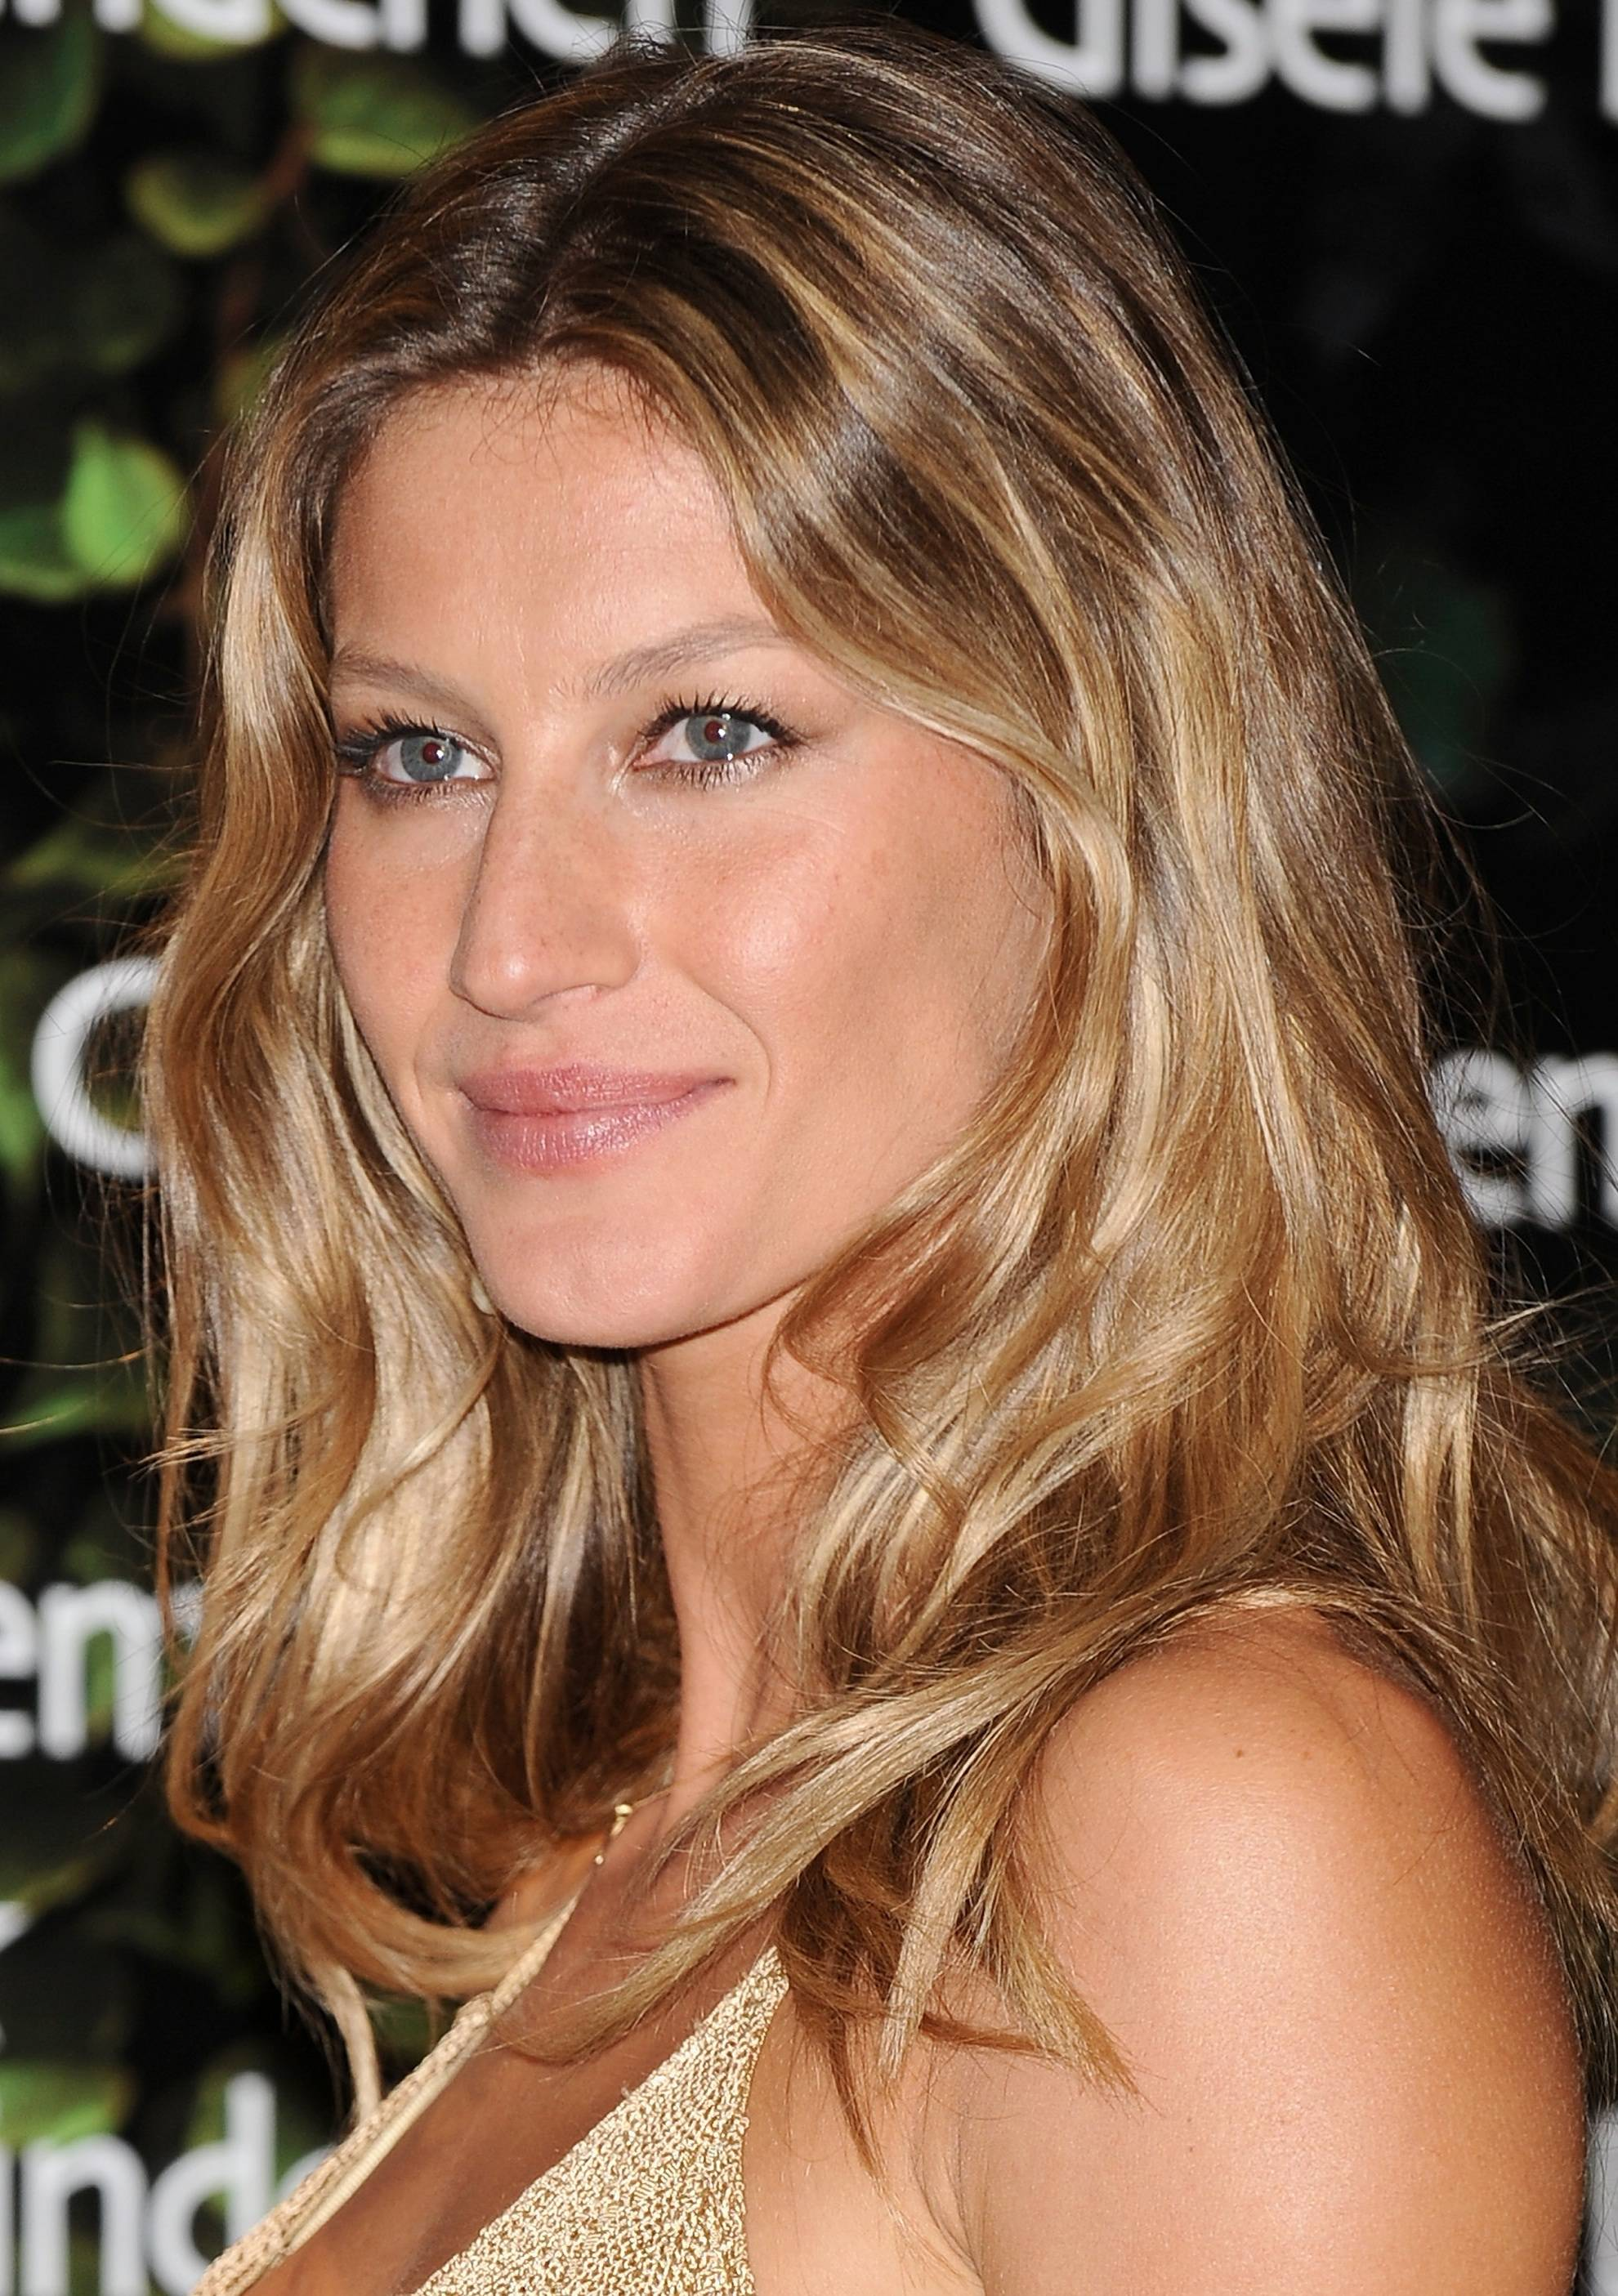 Gisele-bronde-hair-color-2012-trend